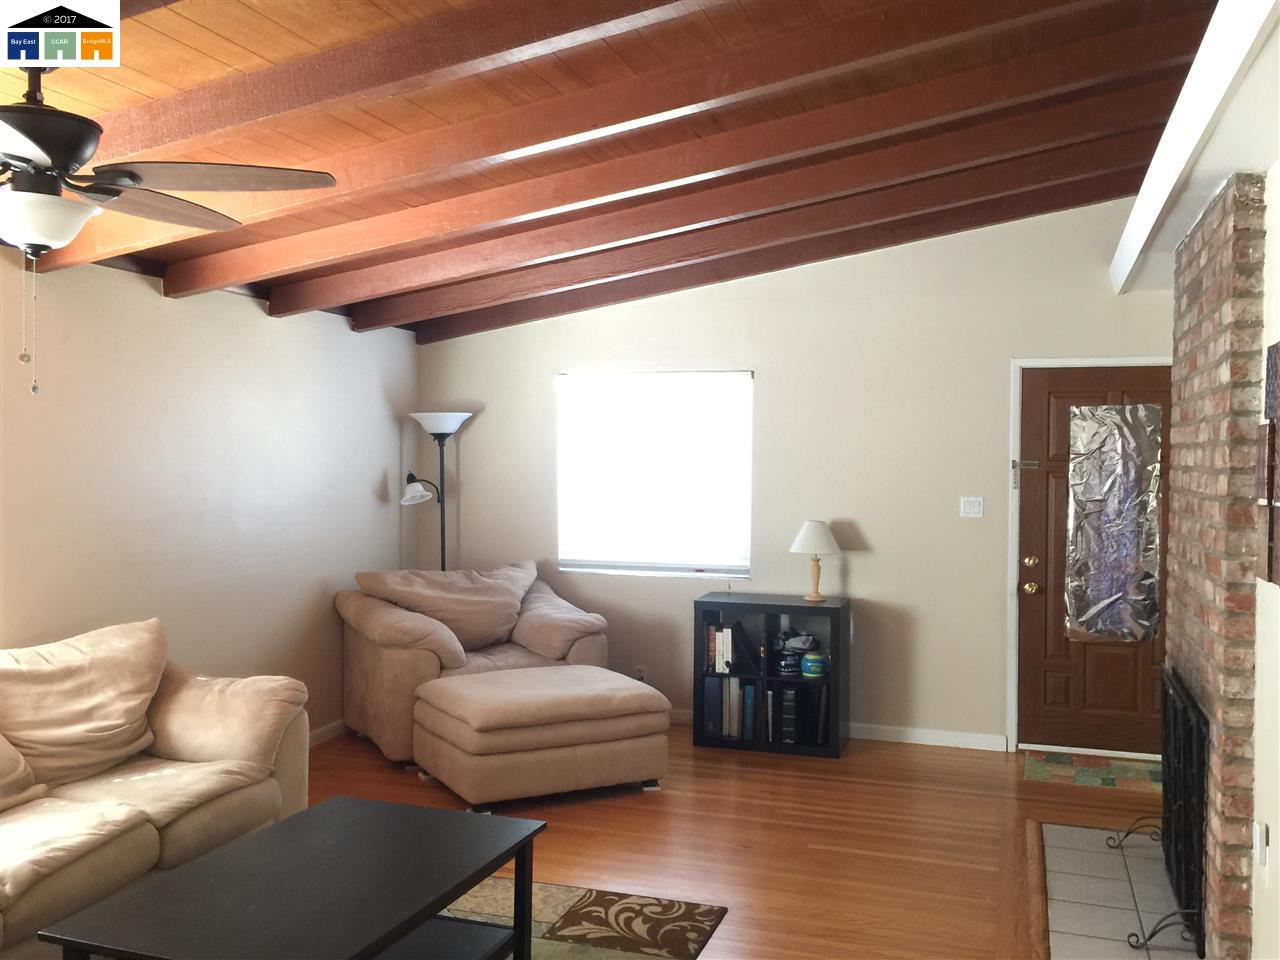 Additional photo for property listing at 24765 Calaroga Avenue  Hayward, カリフォルニア 94545 アメリカ合衆国